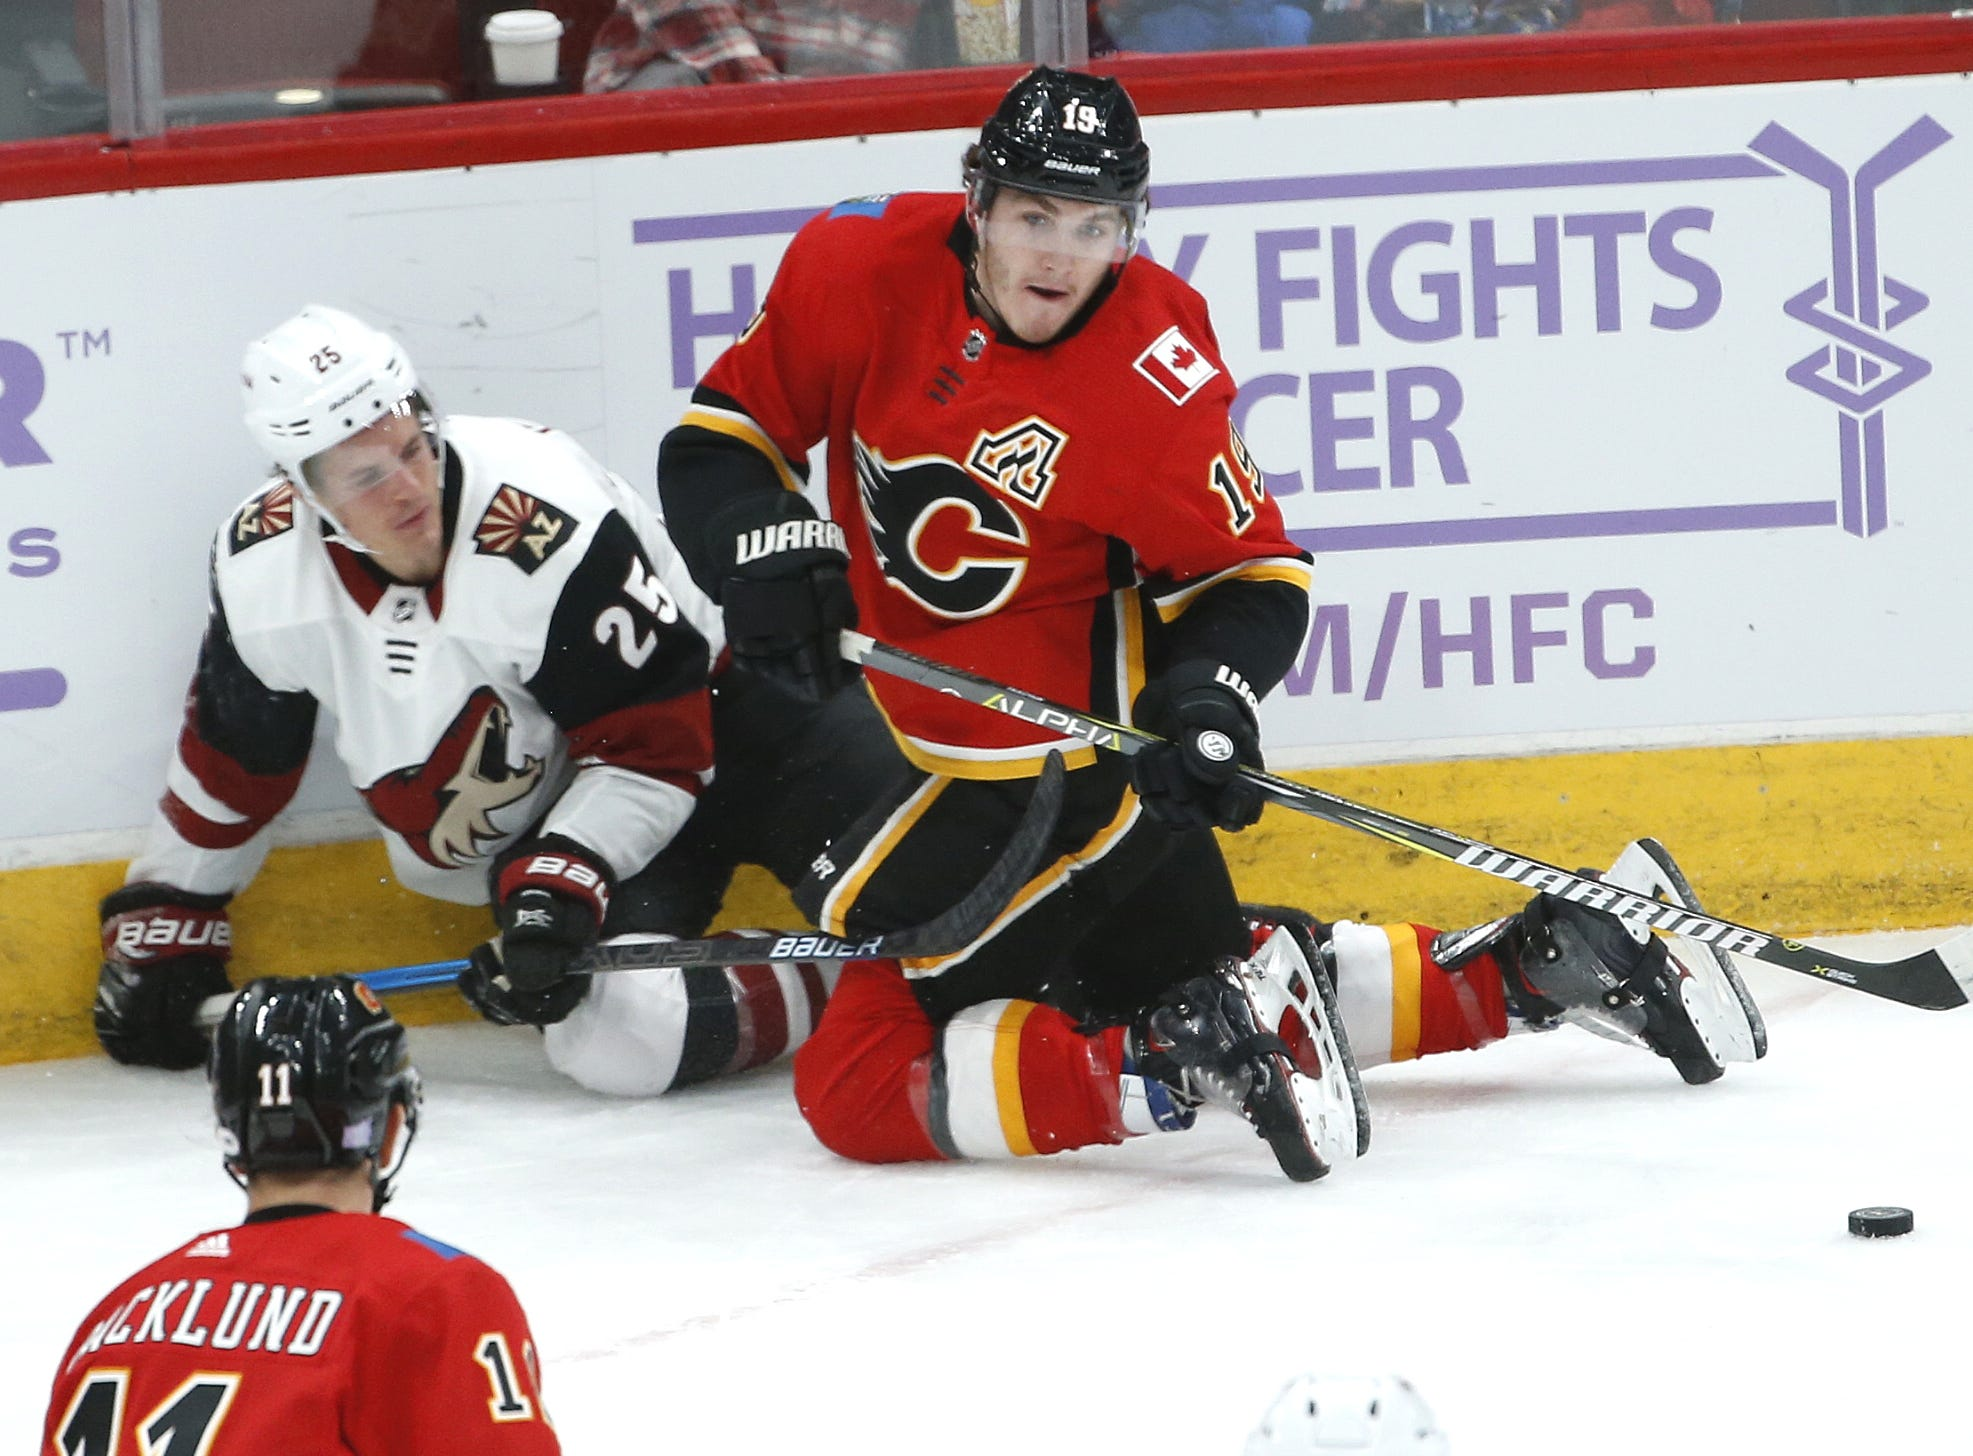 Flames' Matthew Tkachuk (25) passes after being tripped up by Coyotes' Nick Cousins (25) during the first period at Gila River Arena in Glendale, Ariz. on November 25, 2018.